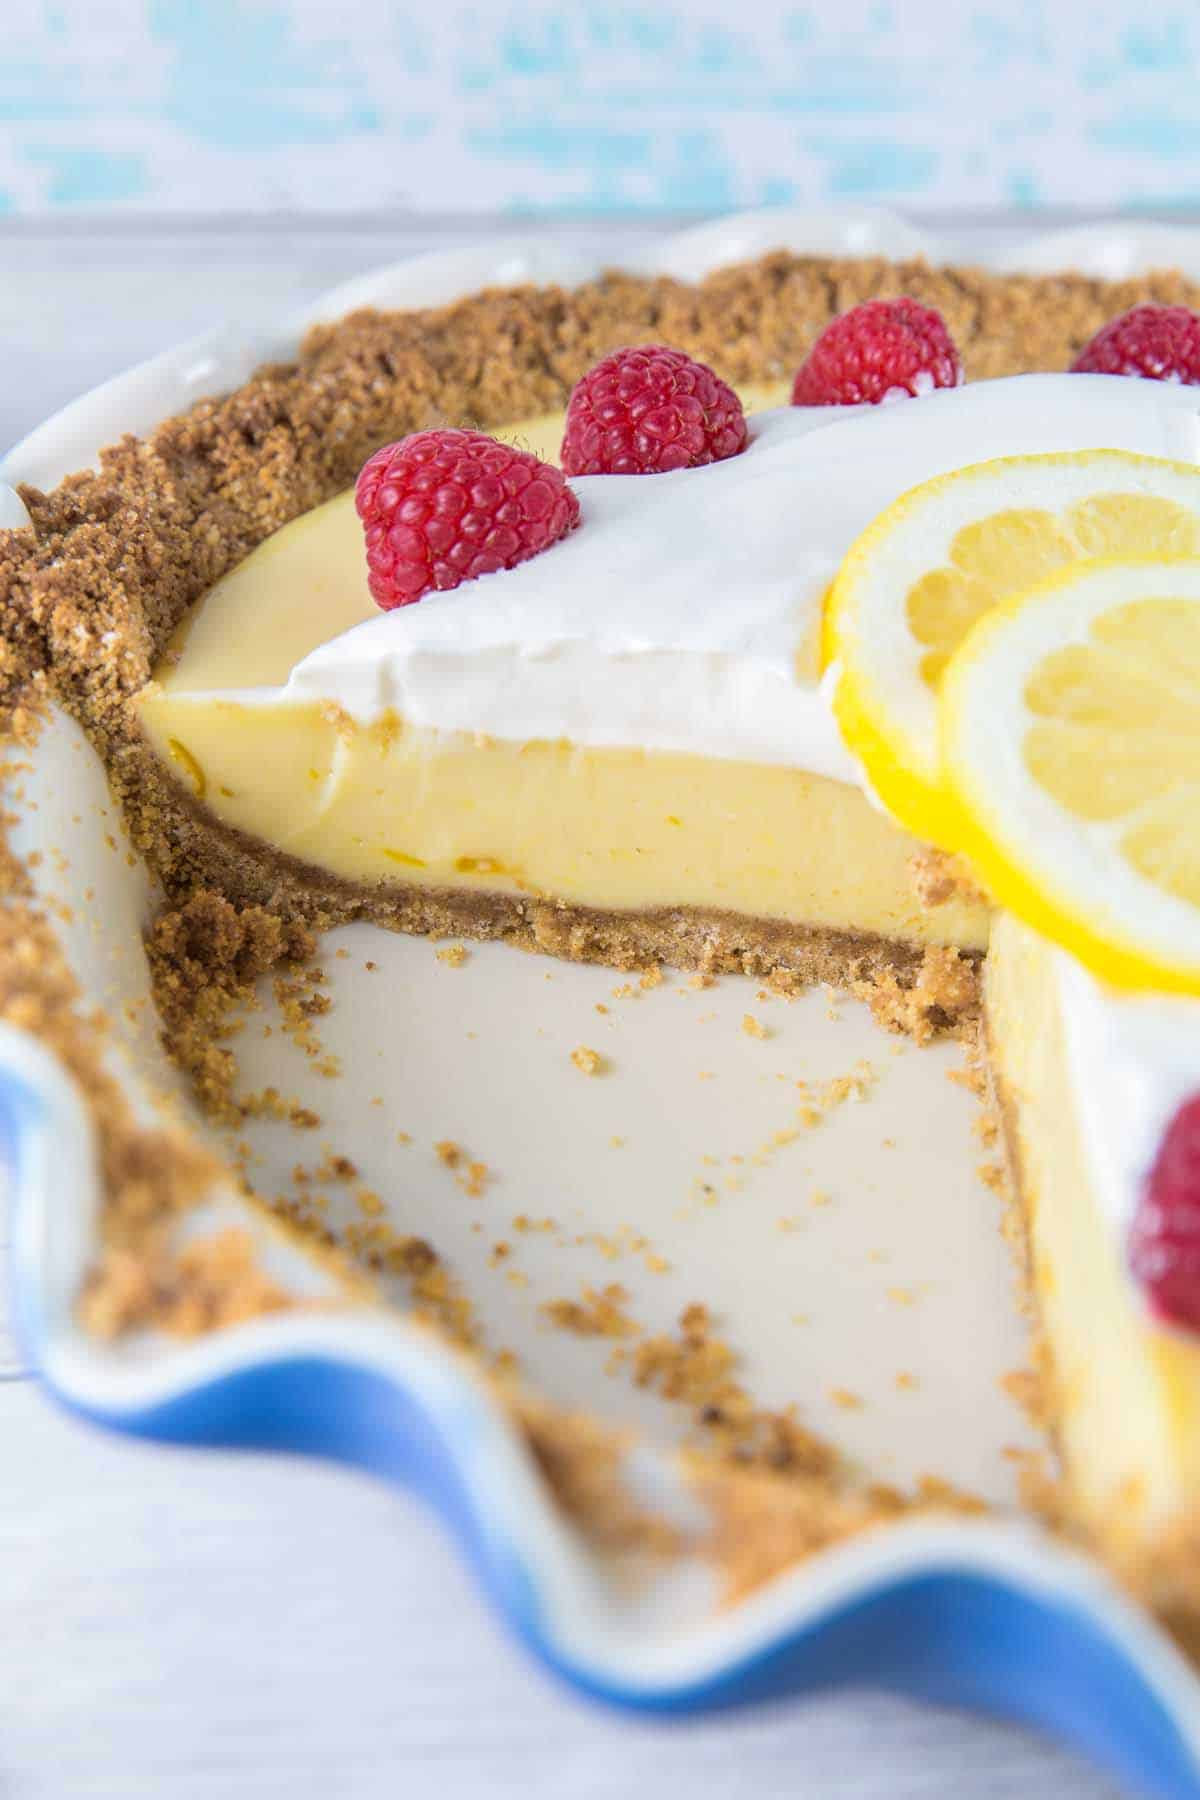 Lemon Pie: Silky smooth and sweet-tart, this easy make-ahead lemon pie is the perfect spring and summer dessert. Only 3 ingredients for a delicious baked lemon custard! {Bunsen Burner Bakery} #pie #lemonpie #easydesserts